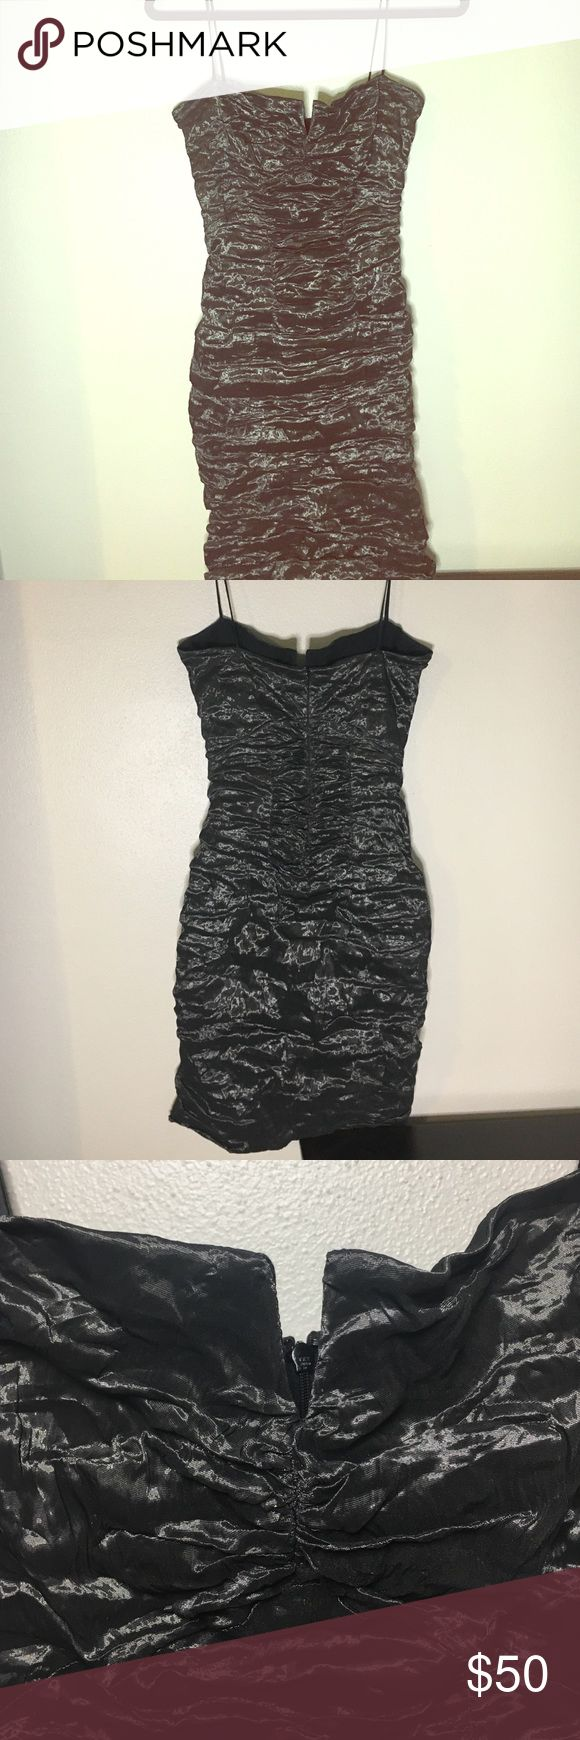 Nicole Miller Techno Metal cocktail dress Dark charcoal grey Nicole Miller little grey dress. This dress runs small. It's labeled size 10 but fits more like a 4-6.  Excellent condition. Worn once. Nicole Miller Dresses Mini